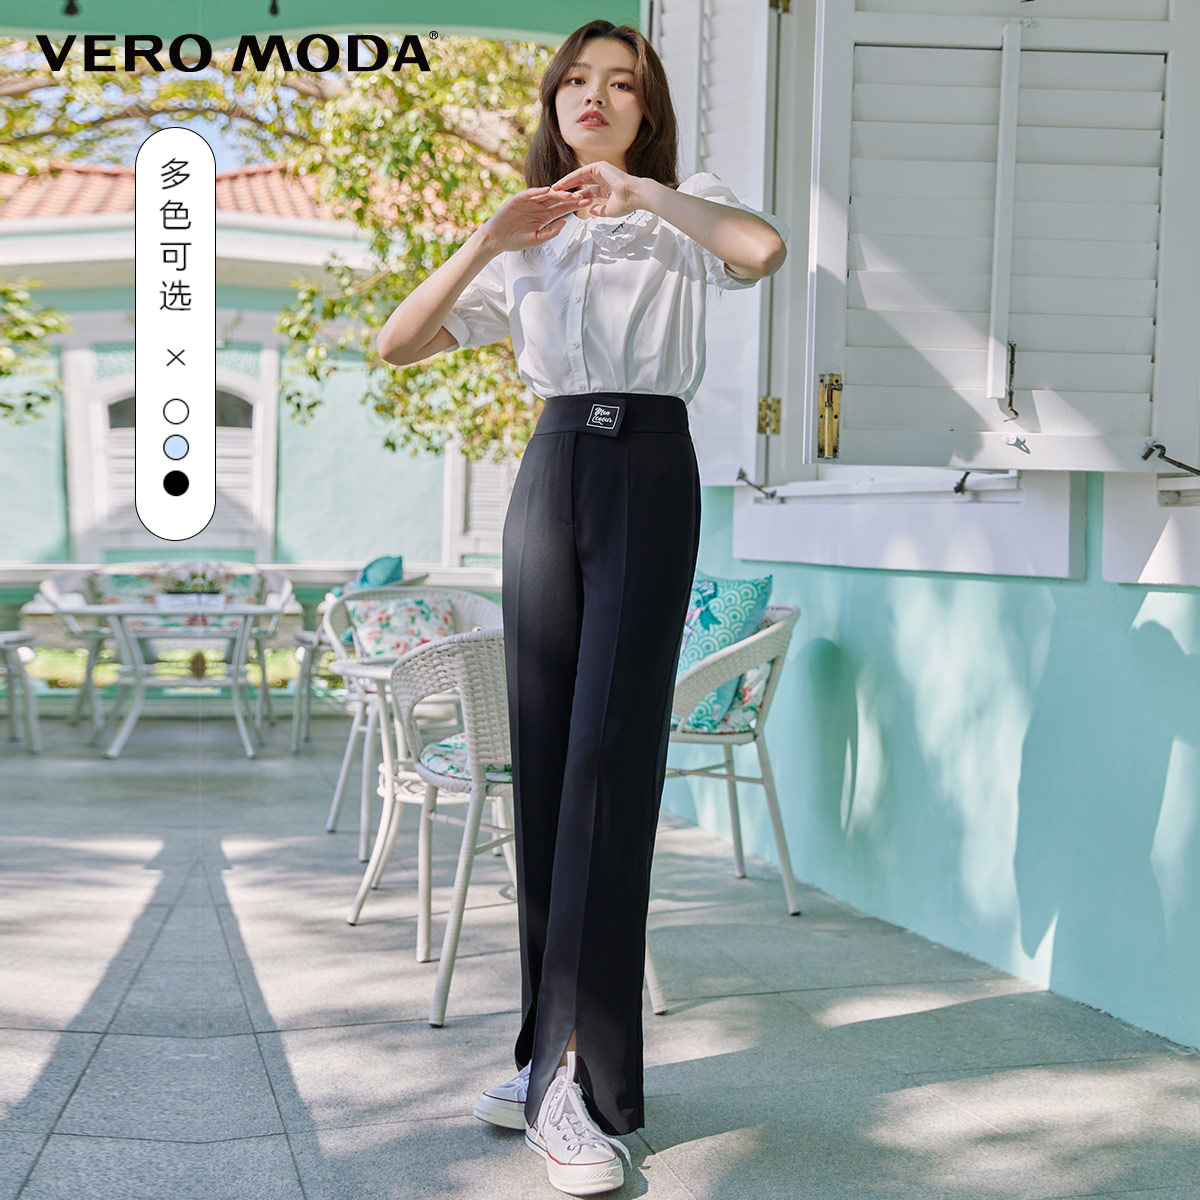 Vero moda slim straight pants 2021 spring and summer new suit pants vertical loose casual pants women